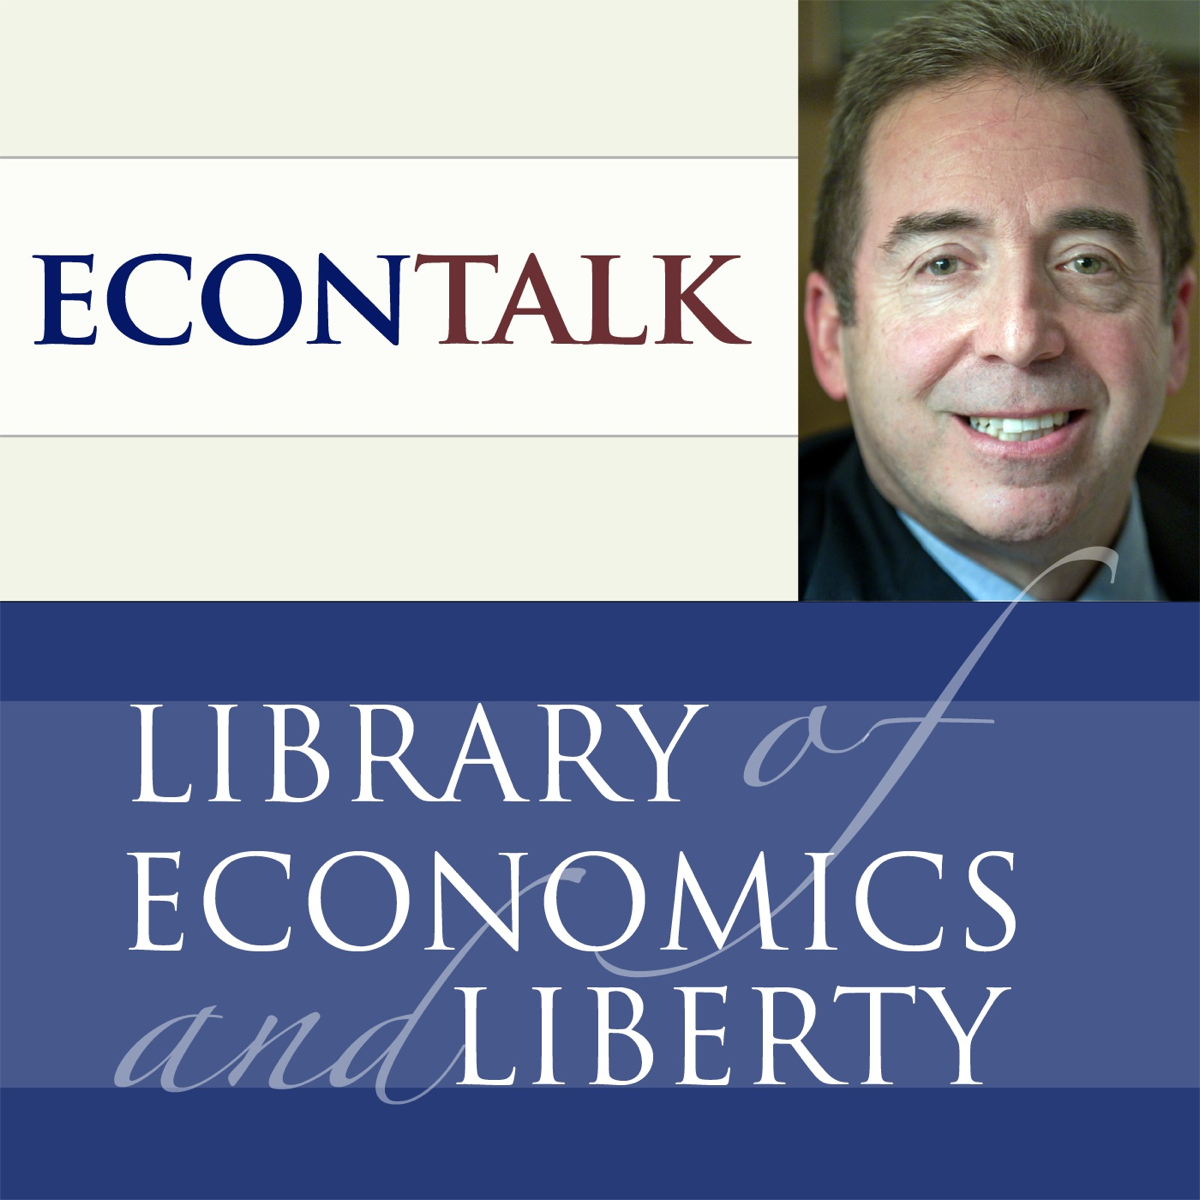 Top 24 episodes | Best episodes of EconTalk | Podyssey Podcasts